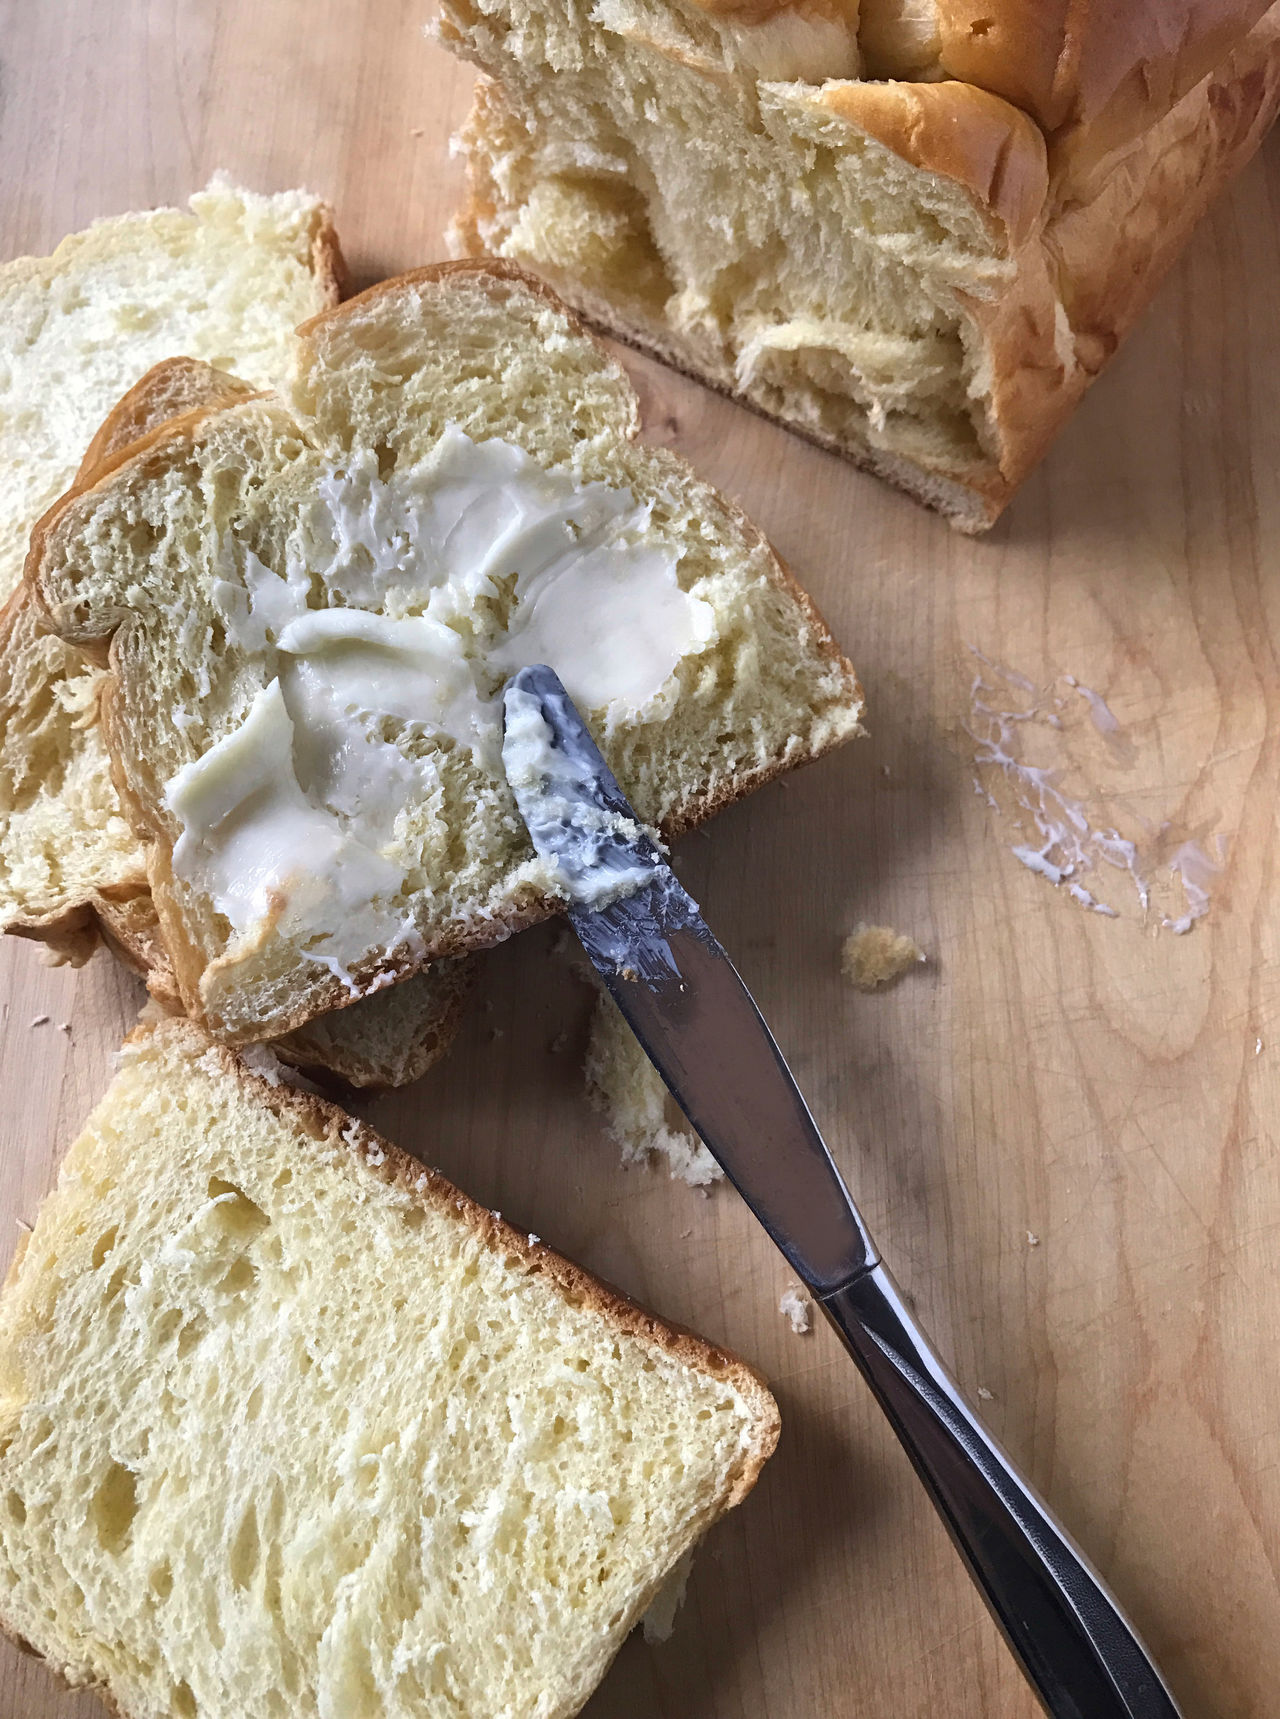 Beige Tones Bread Bread Slices Breakfast Brioche Butter Close-up Cutting Board Day Dinner Knife Food Preparation Indoors  No People Overhead Phone Camera Savory Food Snack Spreading Textures Wood Surface